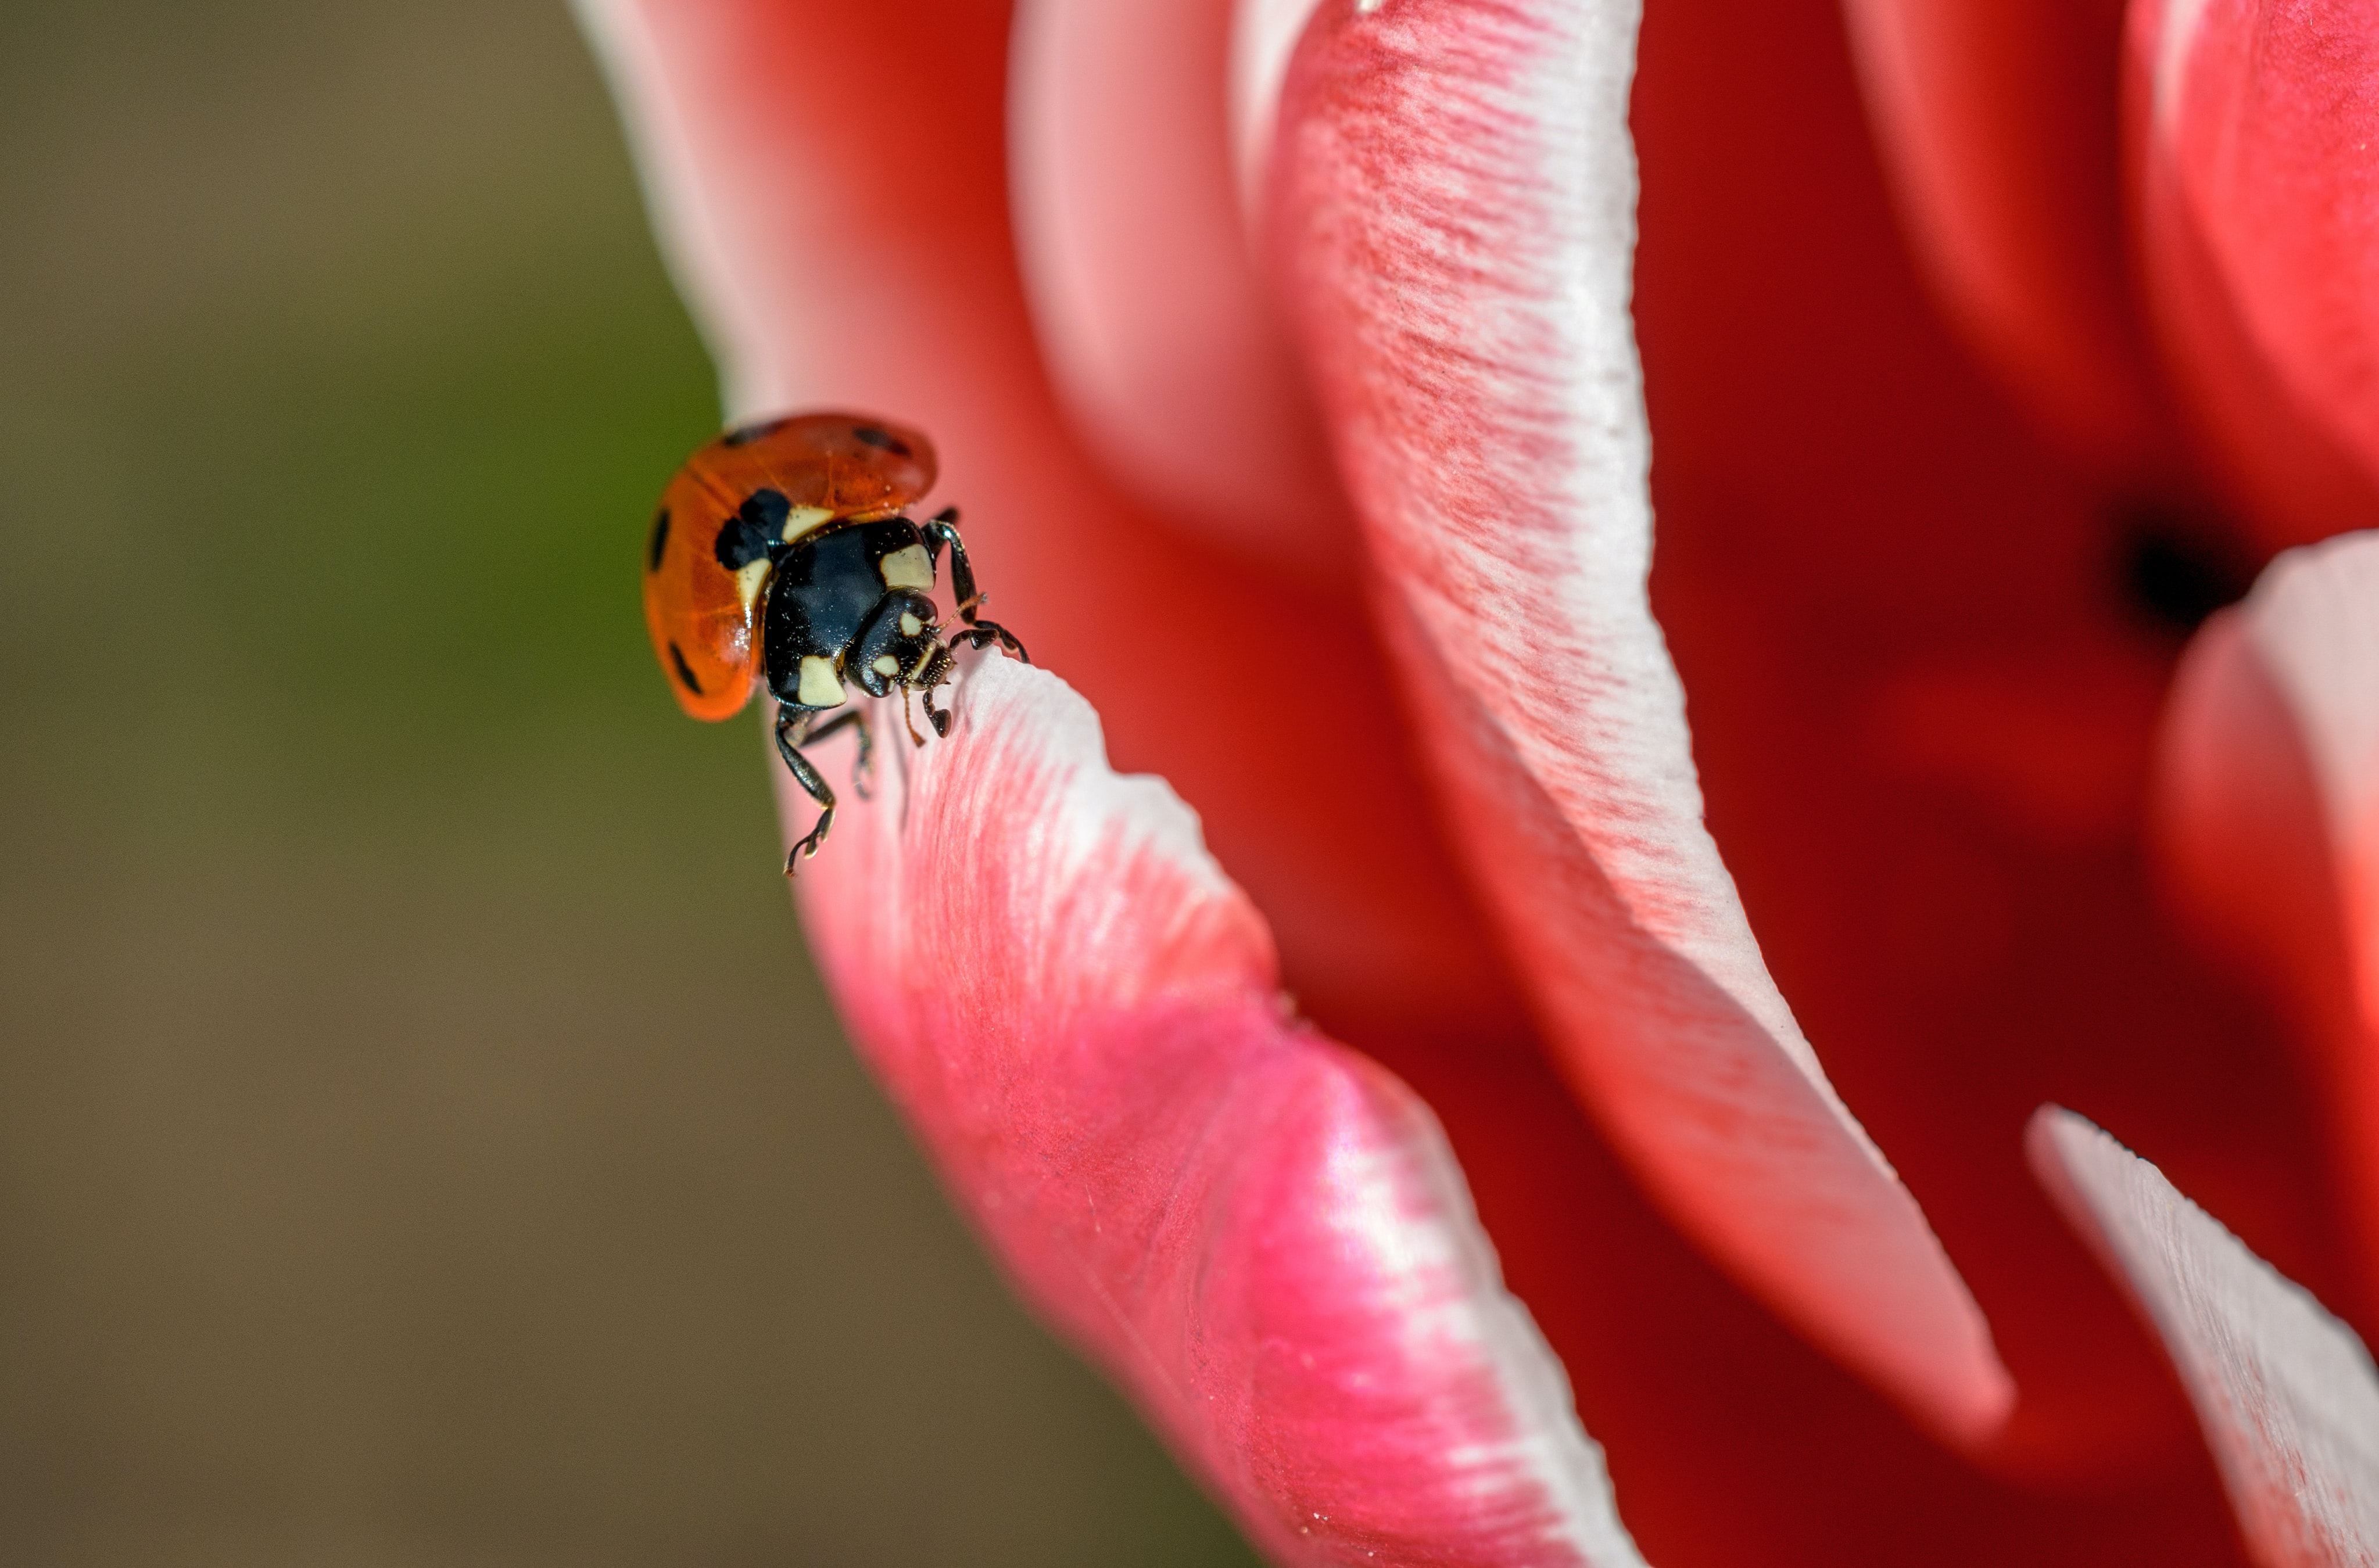 A macro shot of a red ladybug climbing up a red flower petal